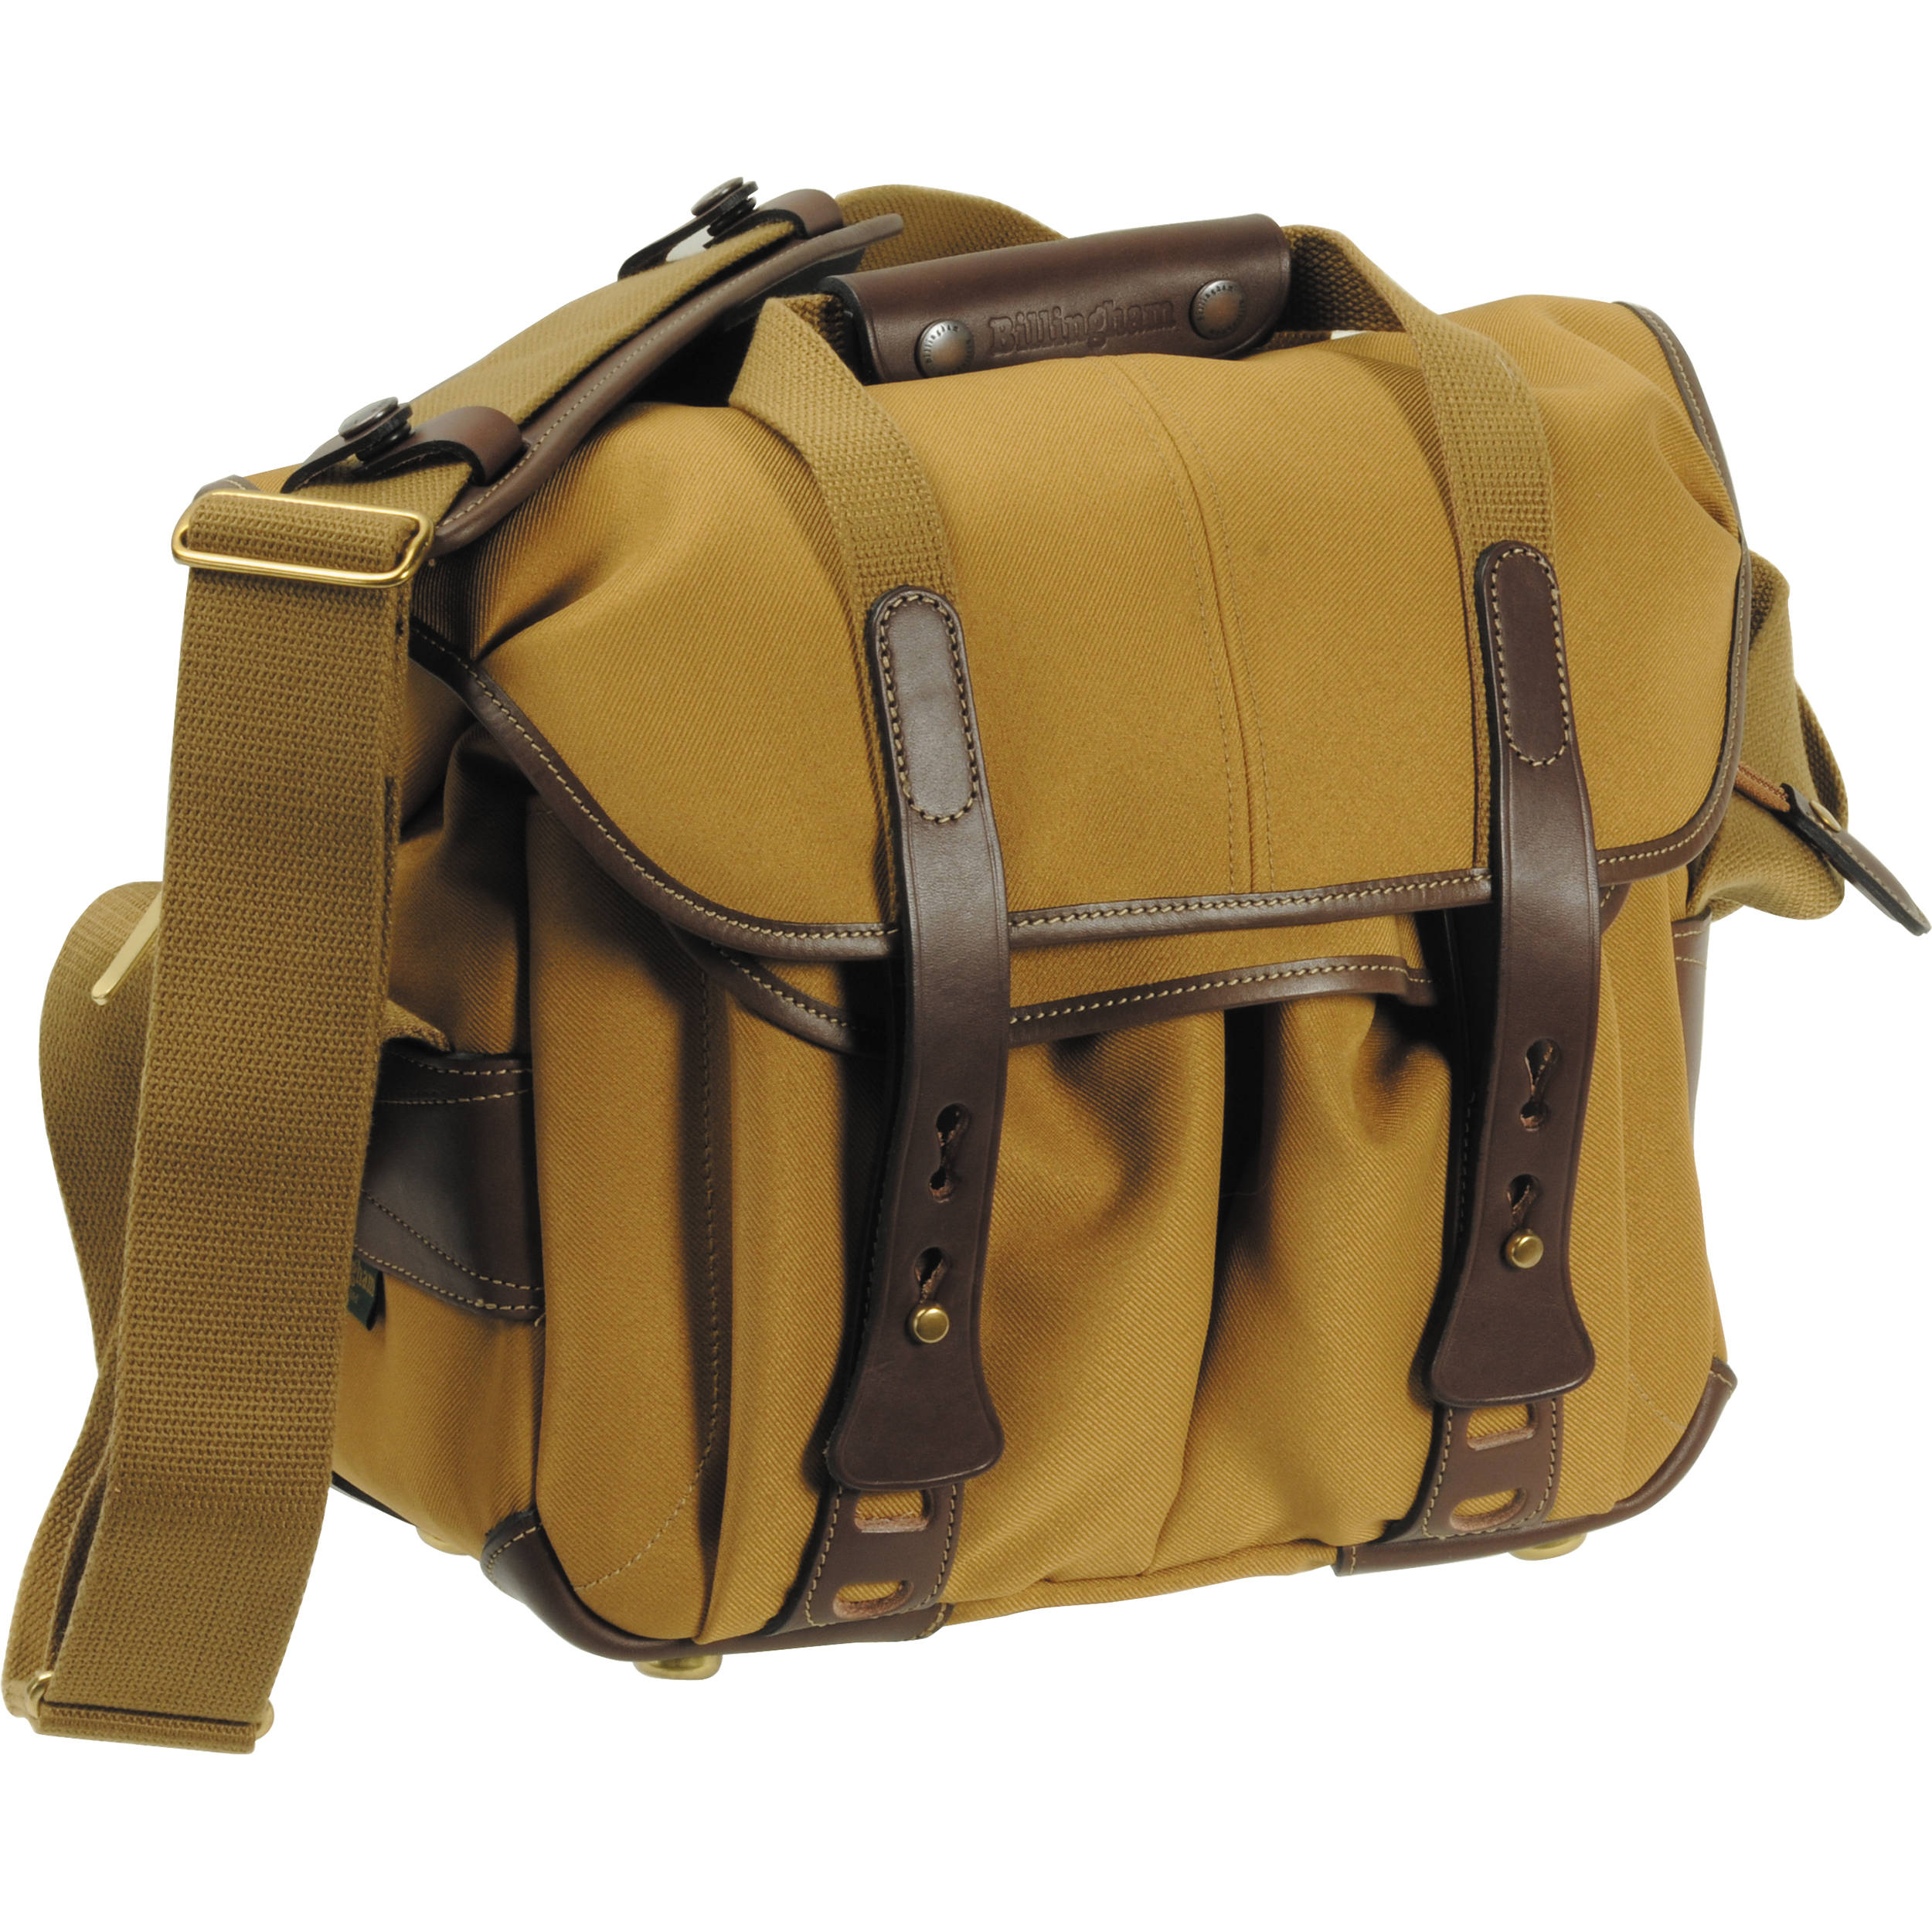 Billingham 207 Camera Bag Khaki With Chocolate Leather